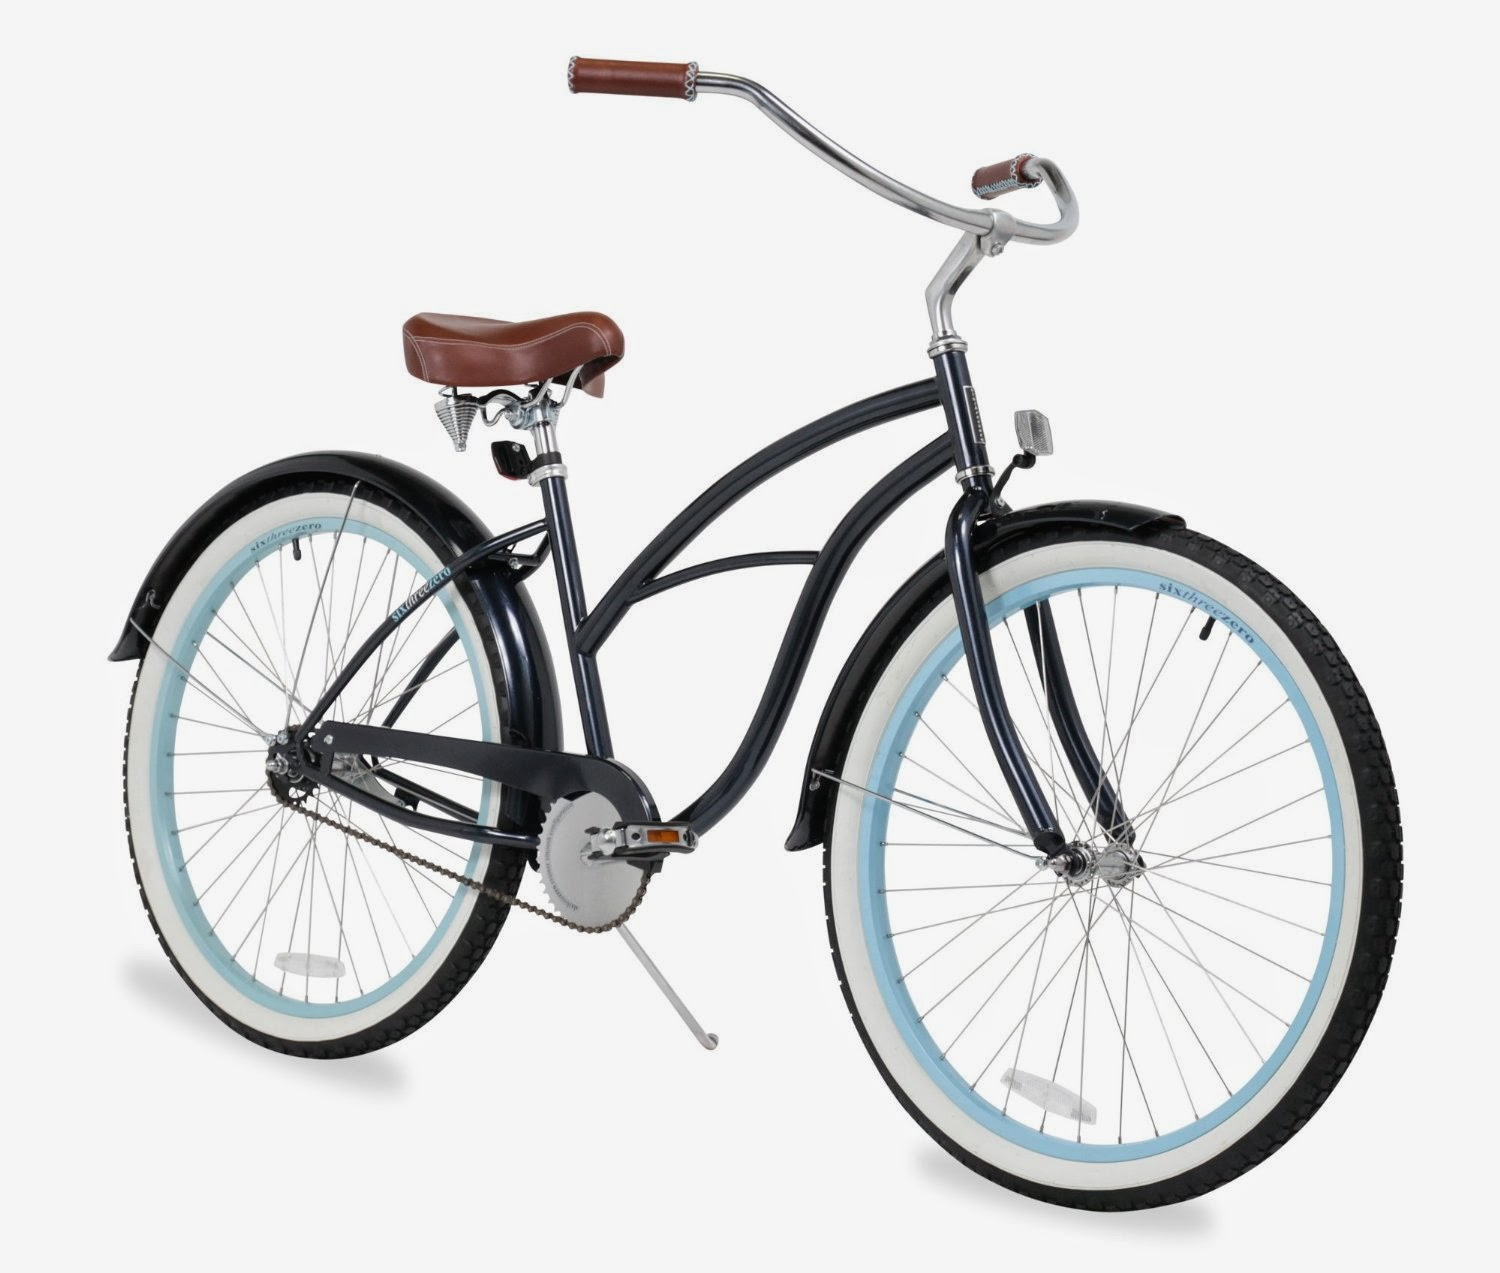 "Women's Sixthreezero 26"" Beach Cruiser Bicycle, picture, review specifications"